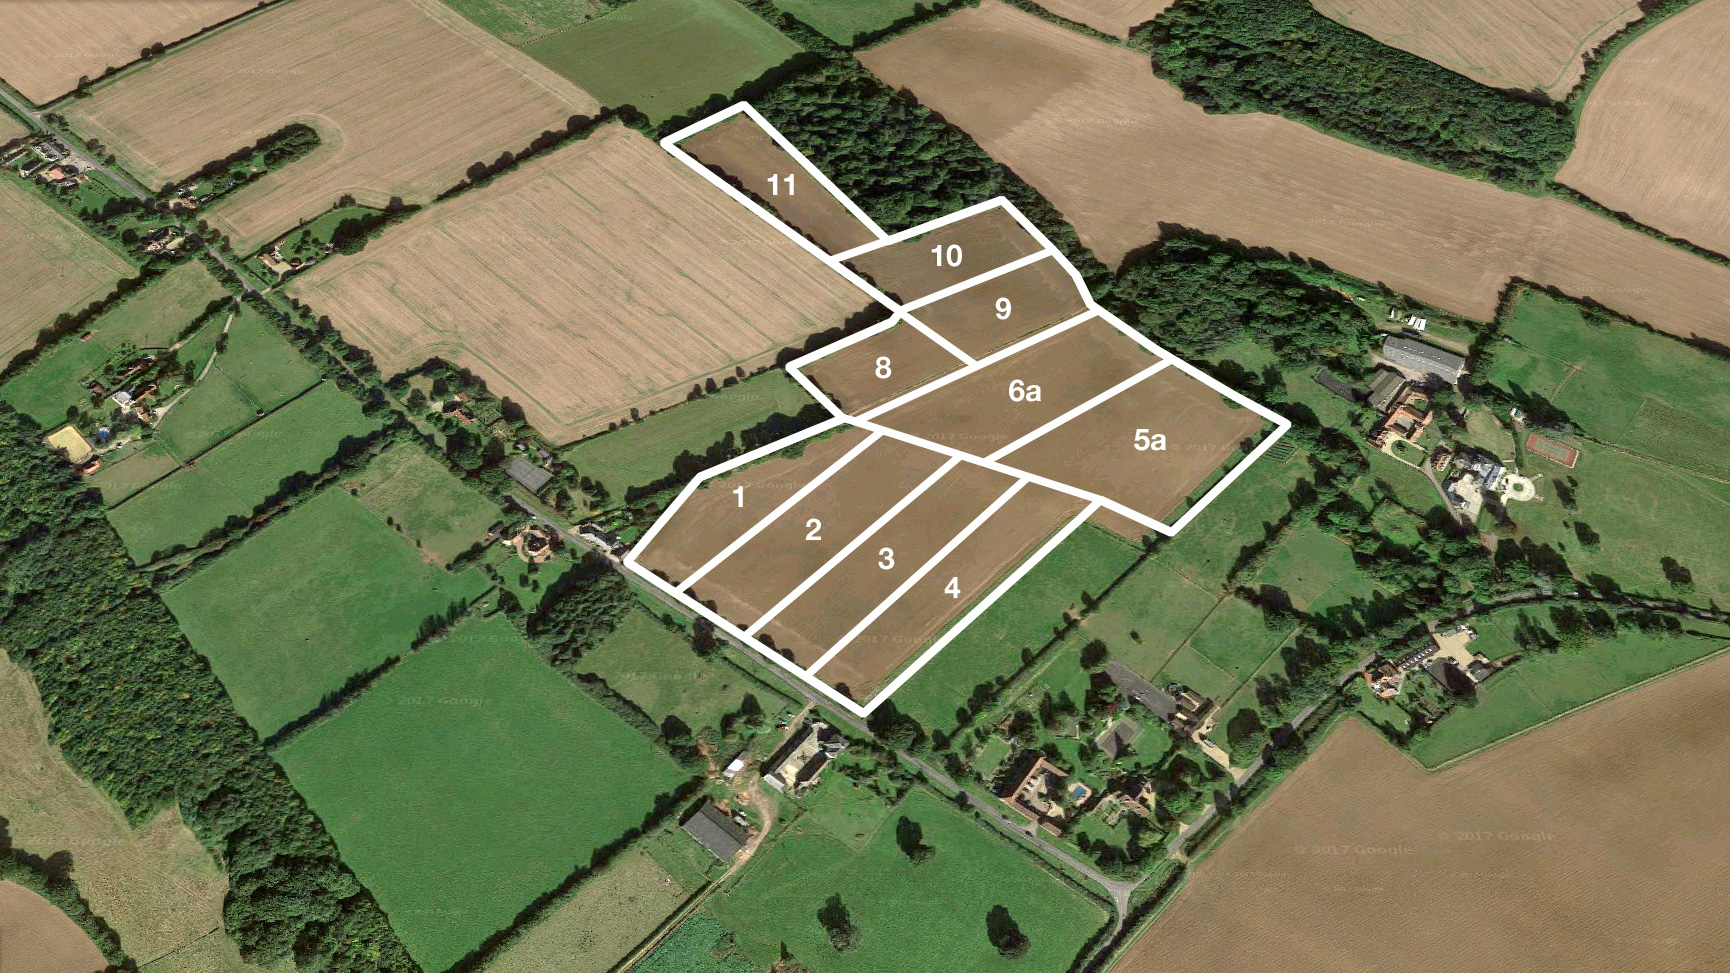 Land for sale in Gaddesden Row aerial view